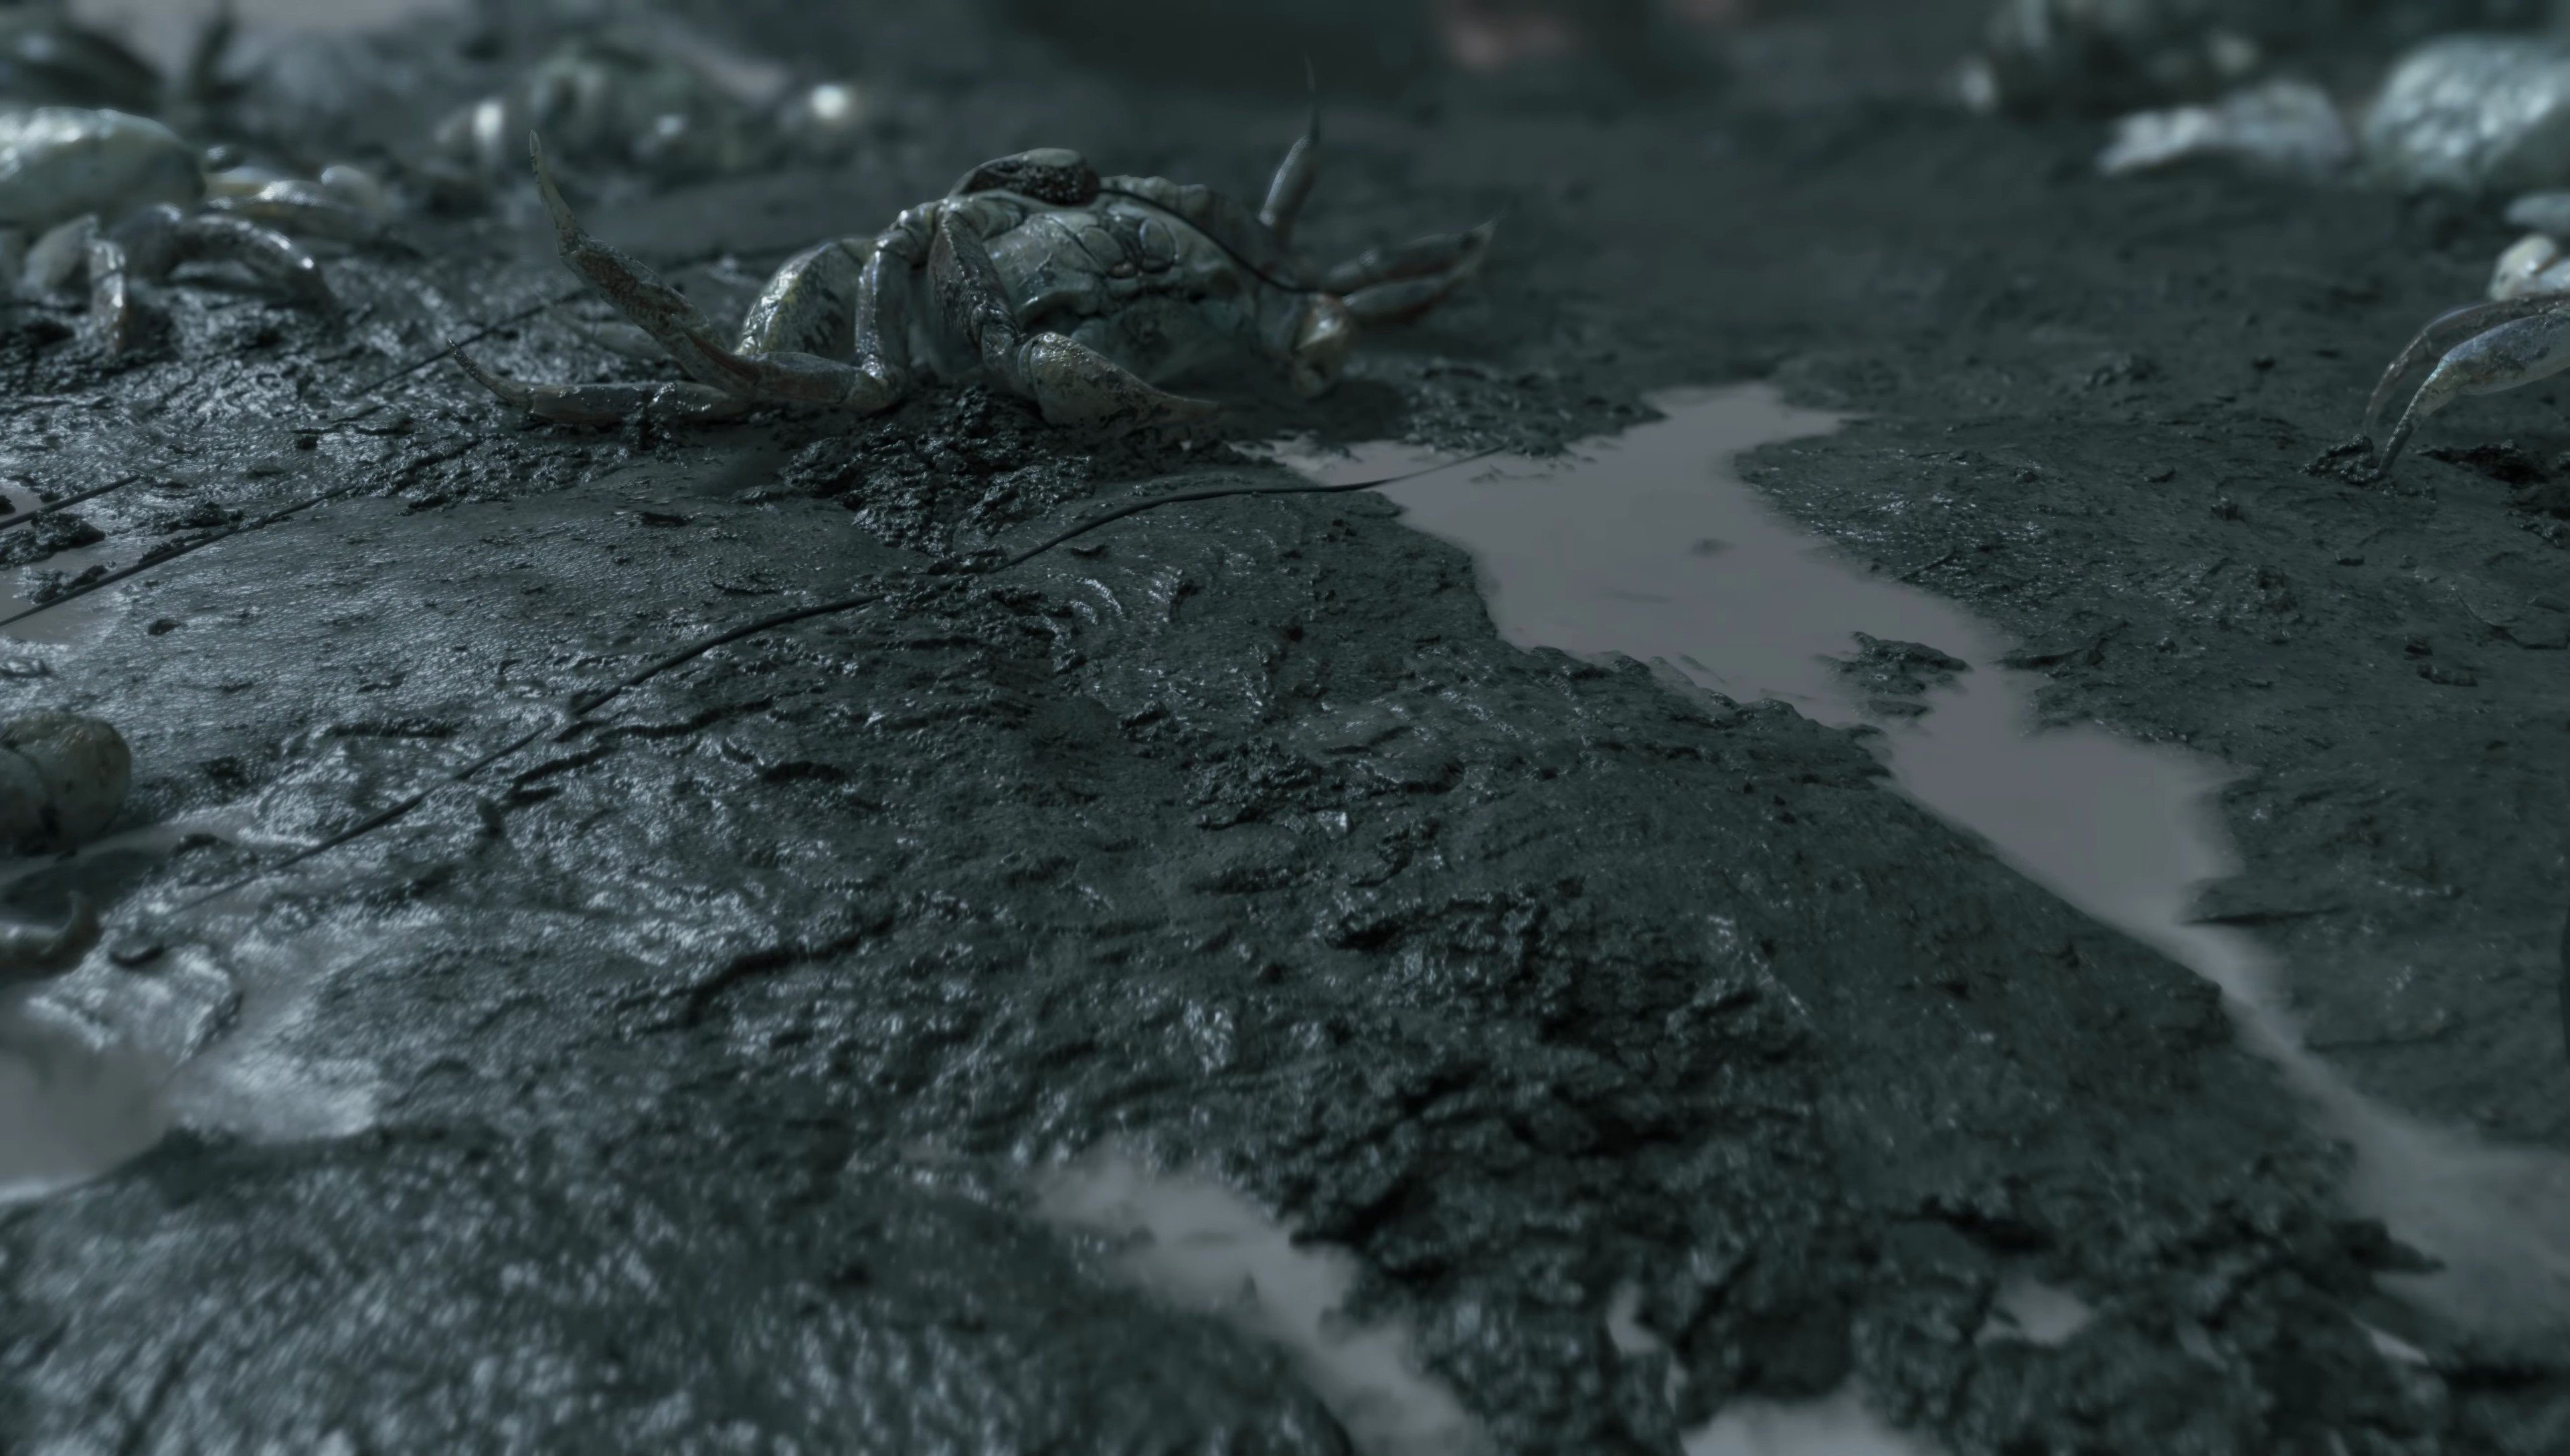 Death Stranding Hideo Kojima Kojima Productions Apocalyptic Horror Hd Wallpapers Desktop And Mobile Images Photos